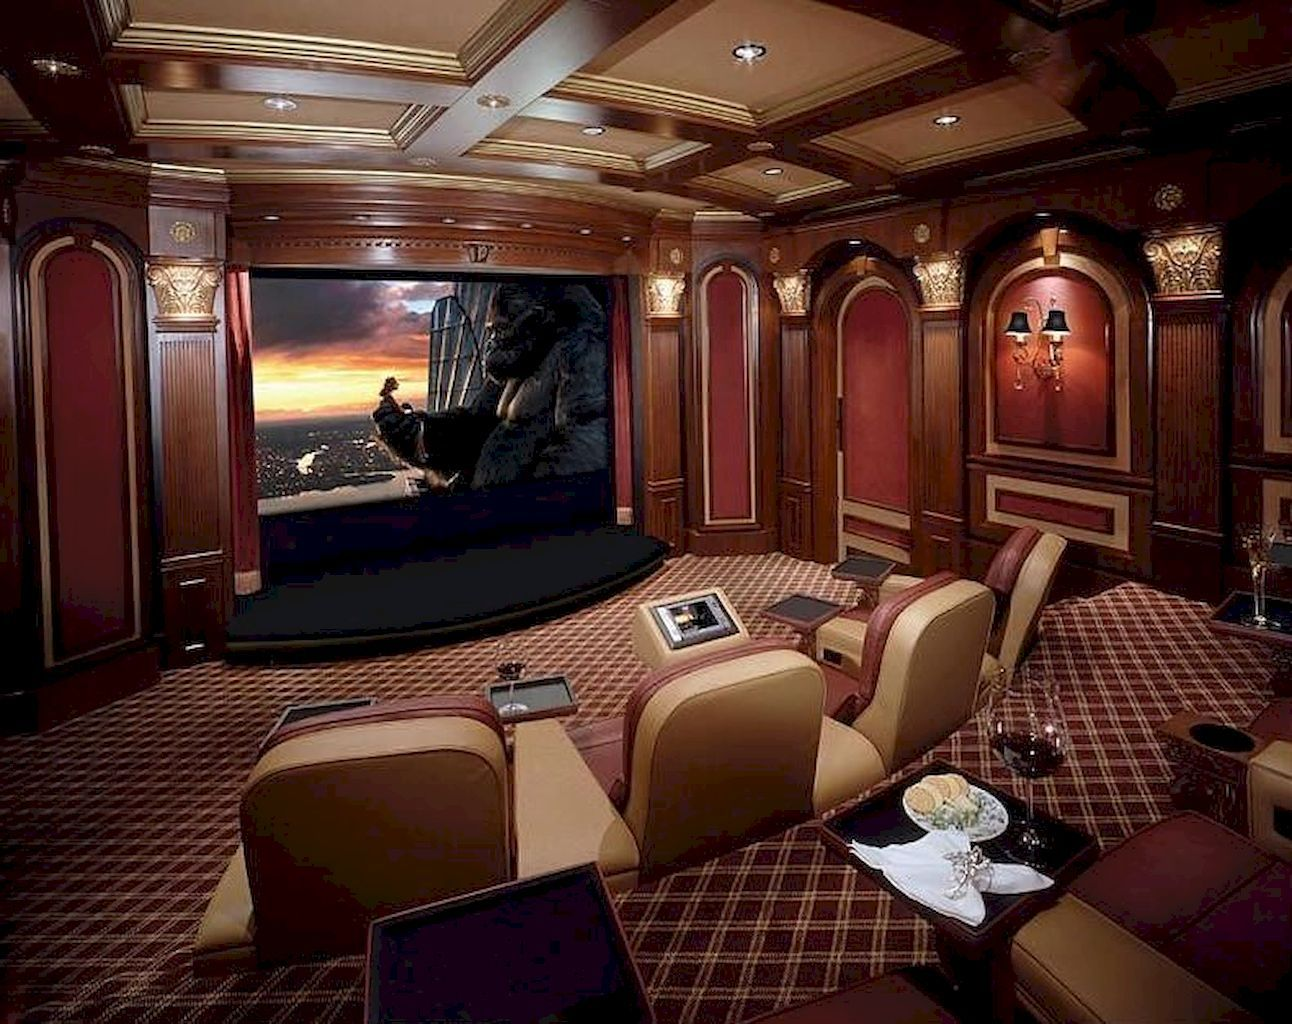 49++ Fau living room theater showtimes ideas